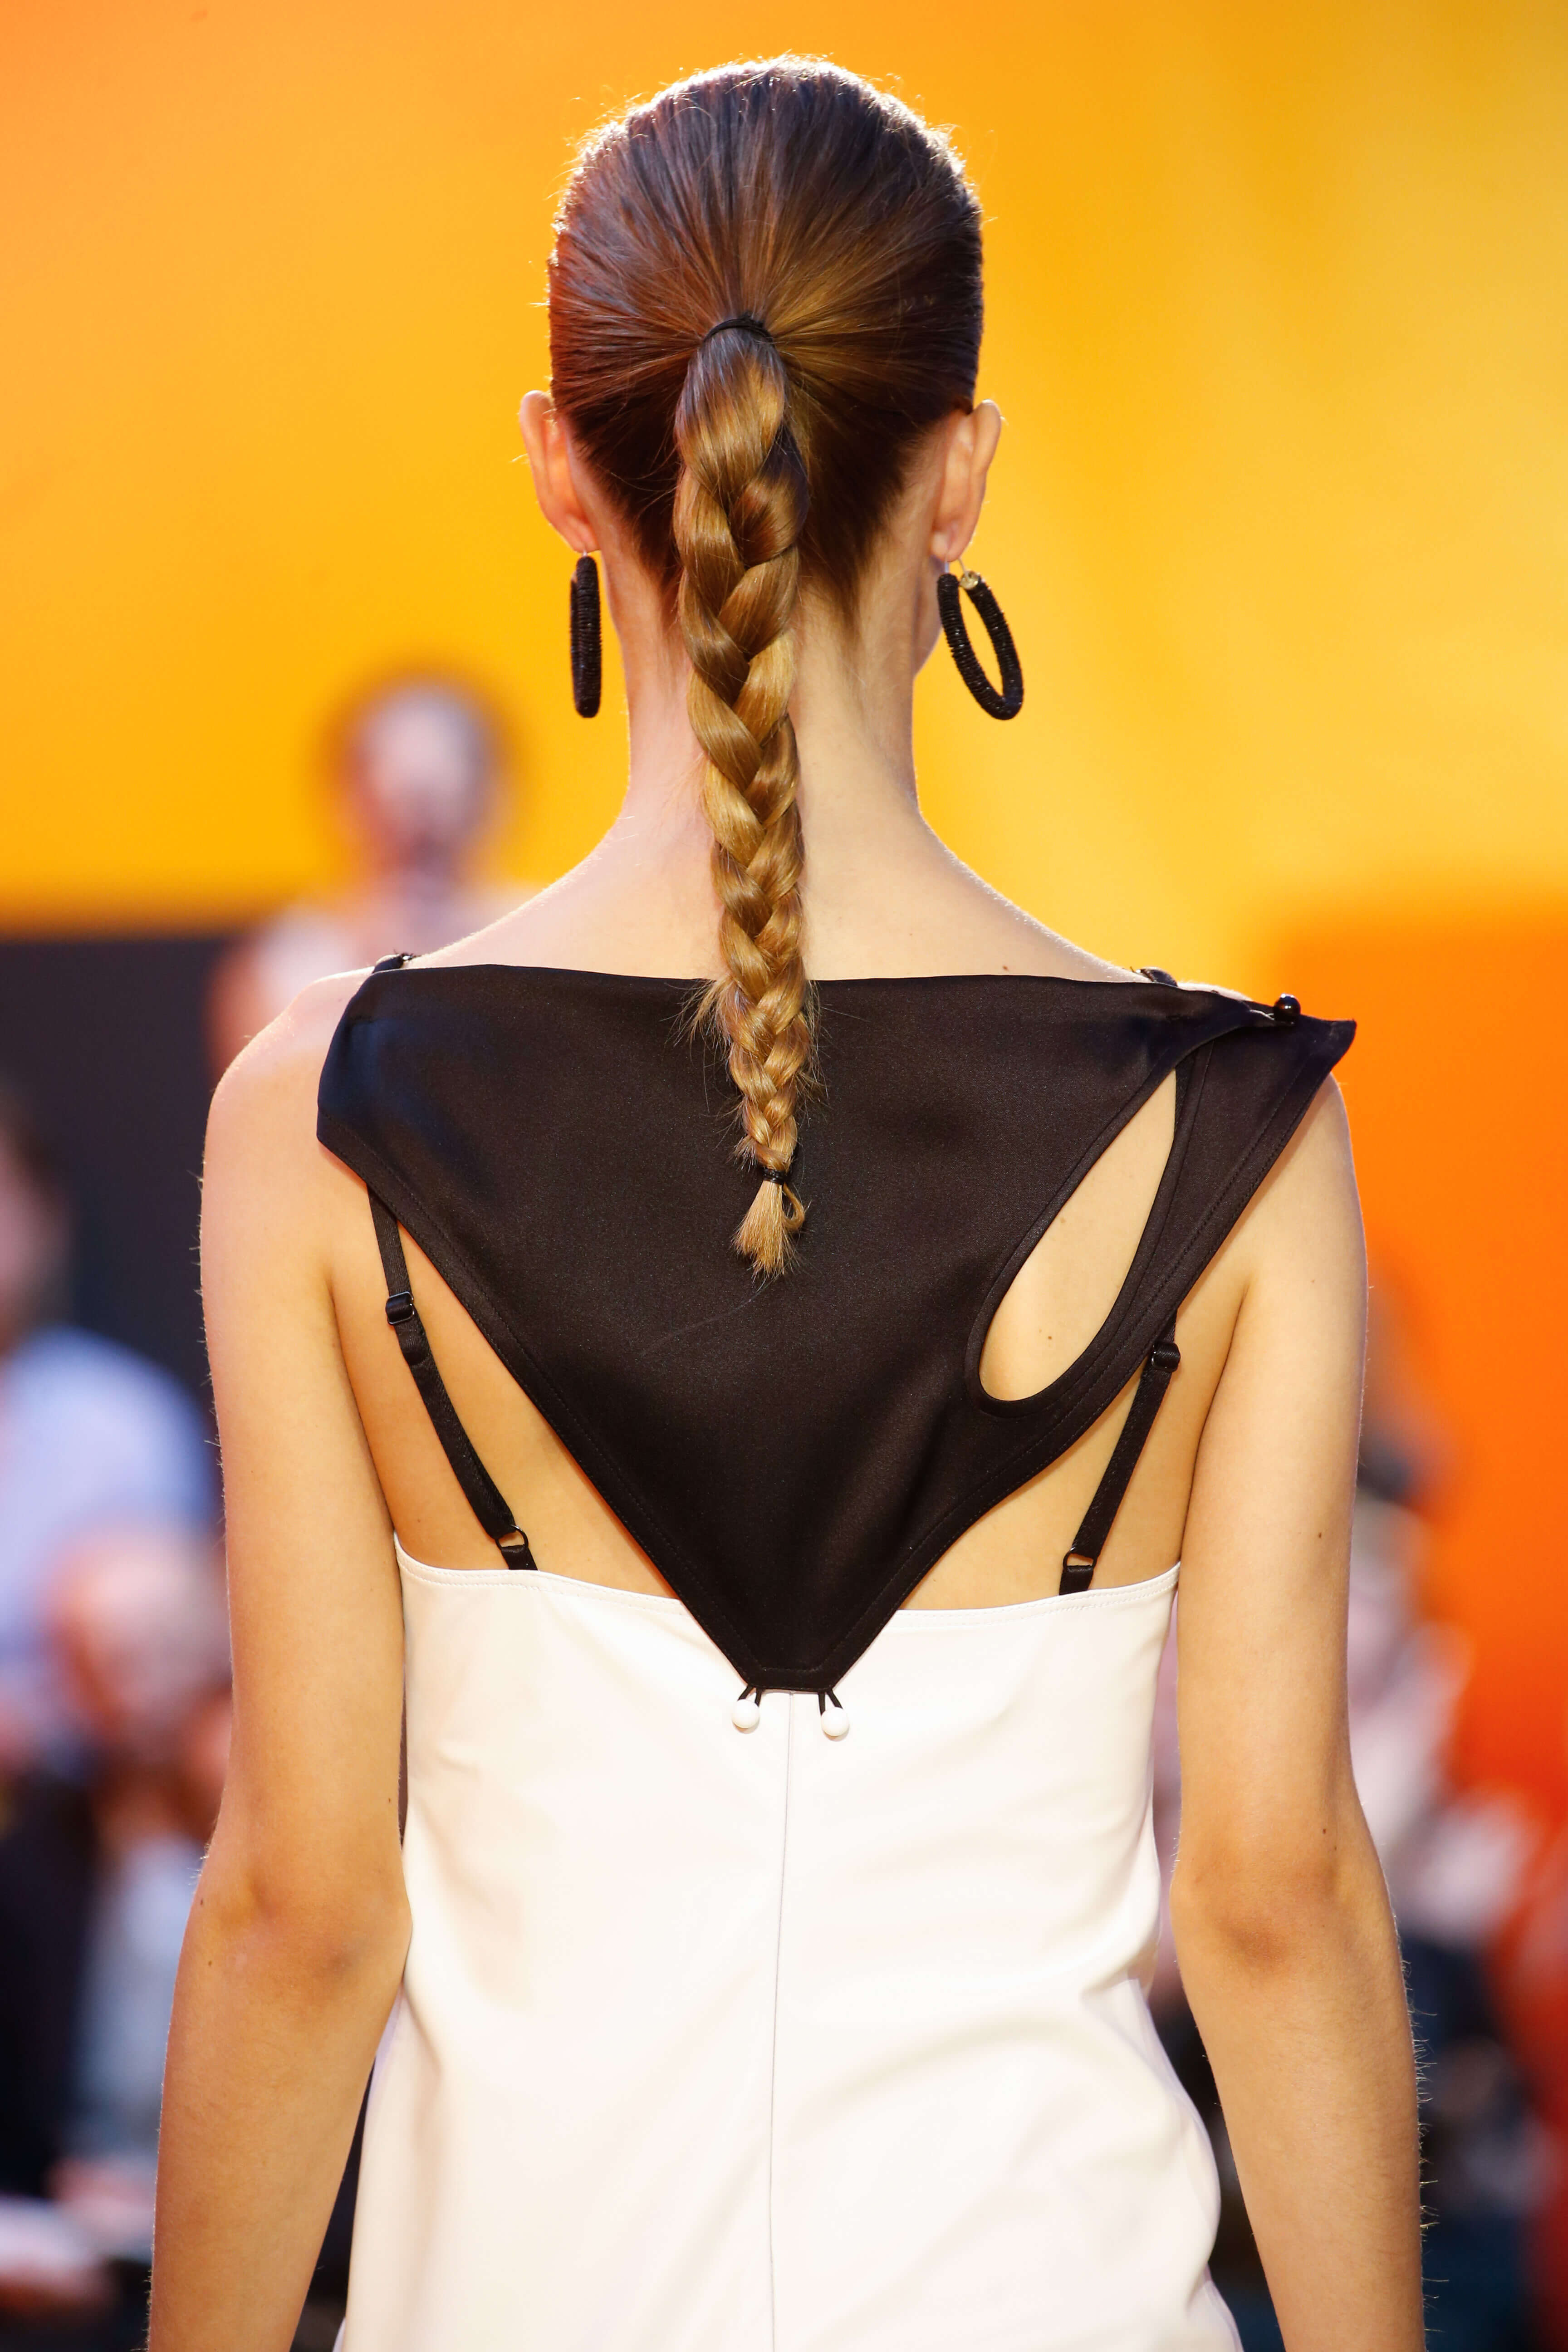 Aaron Carlo: All Things Hair - IMAGE - party twists and braids